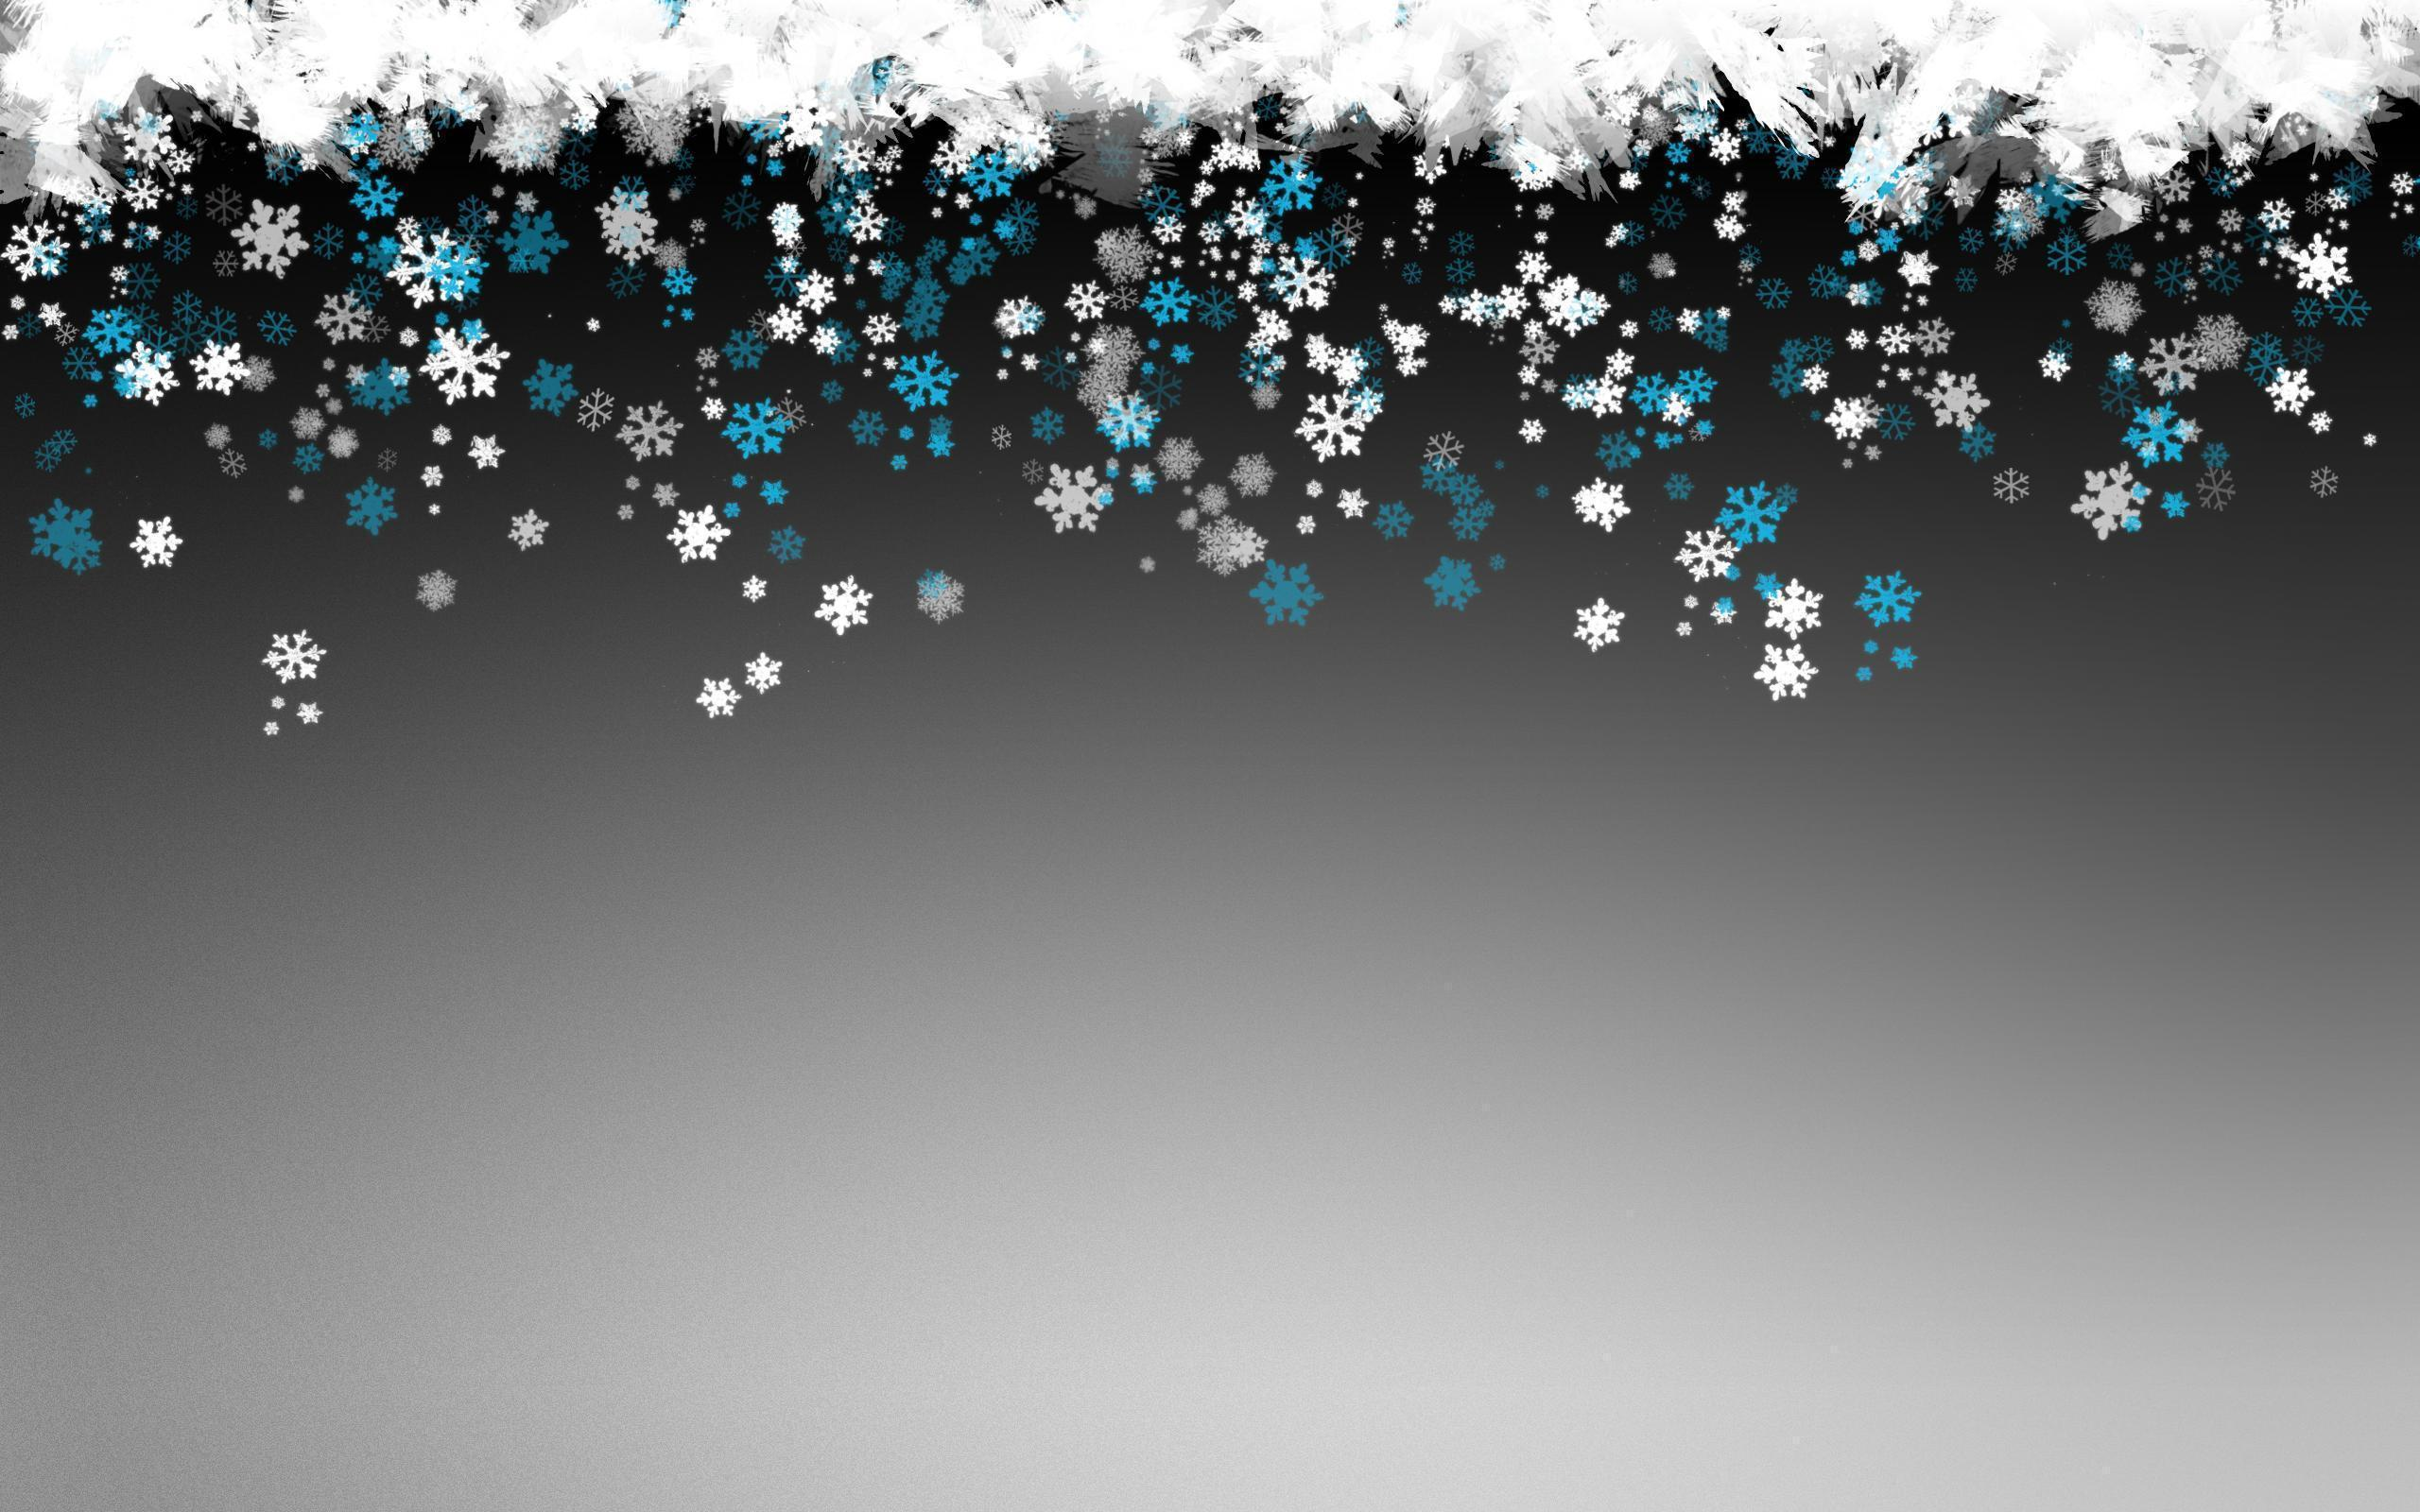 Snowflake wallpapers wallpaper cave for New cool images